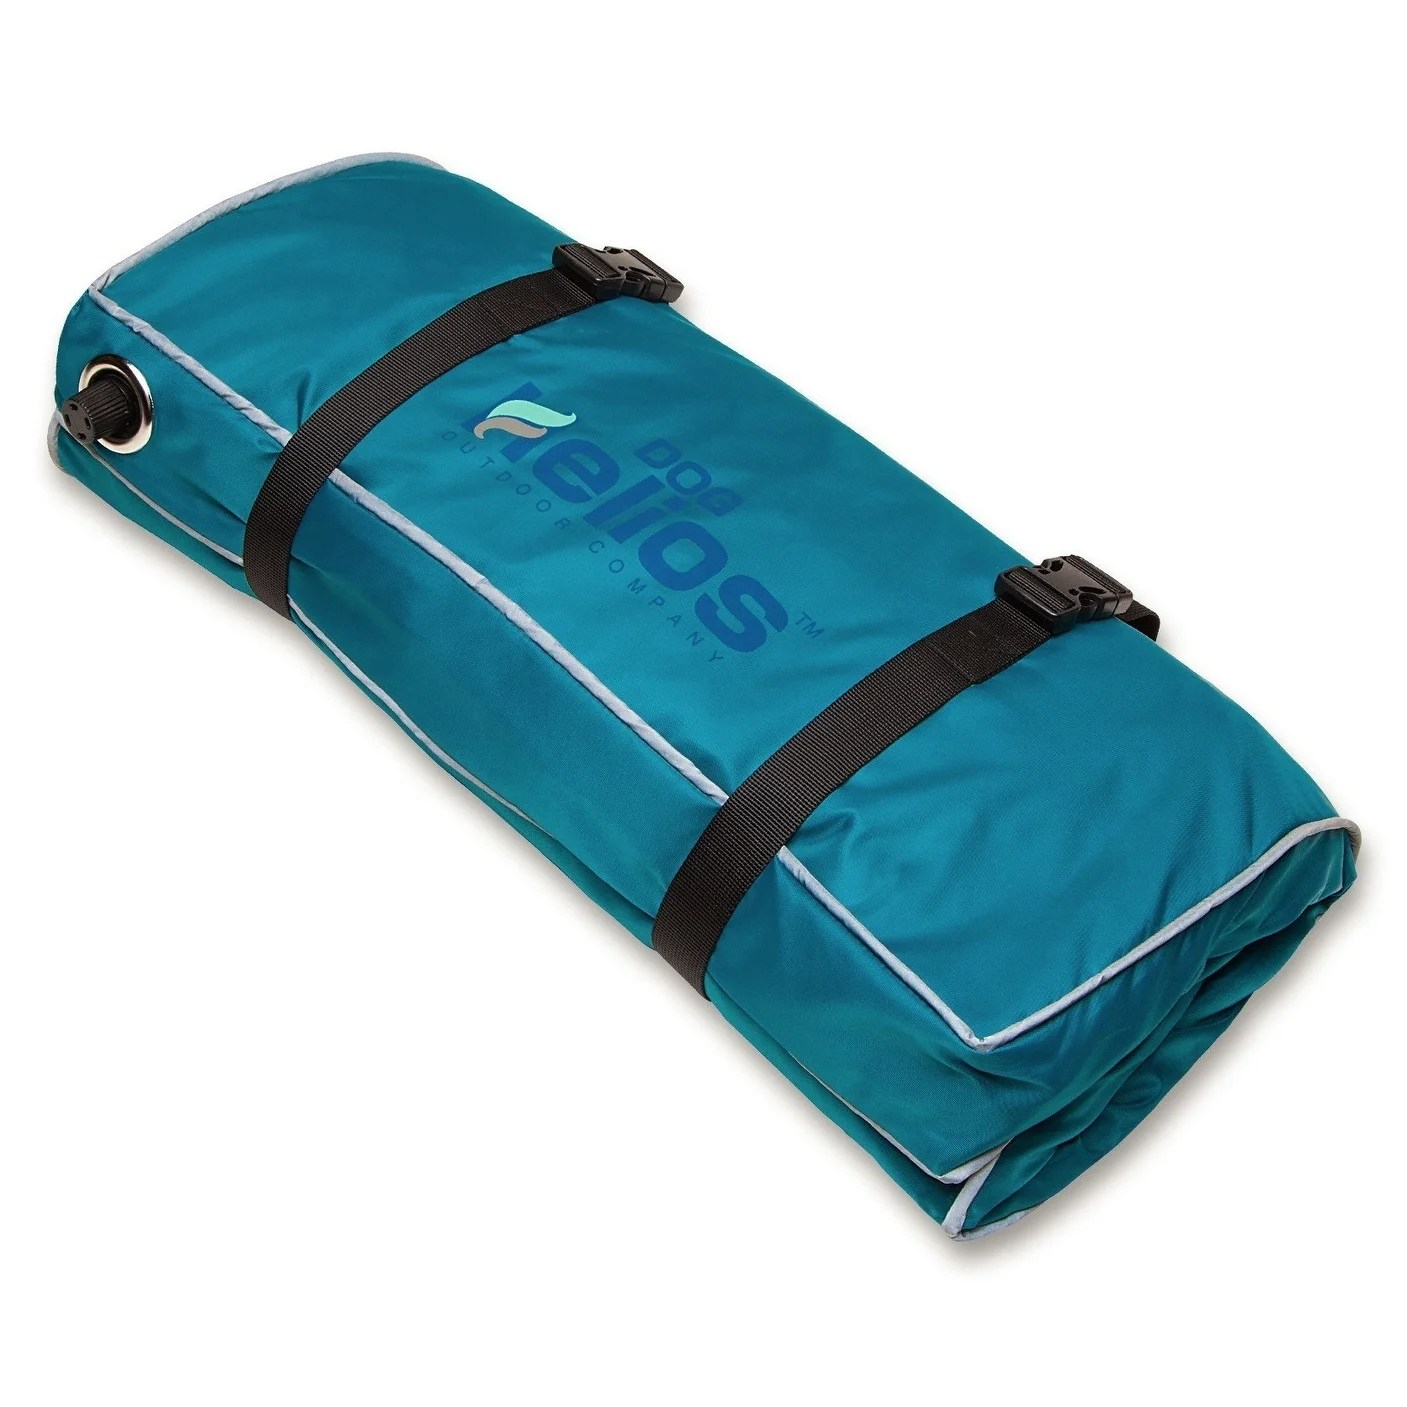 Camping Aero Bed Dog Helios Aero Inflatable Outdoor Camping Travel Waterproof Pet Dog Bed Mat